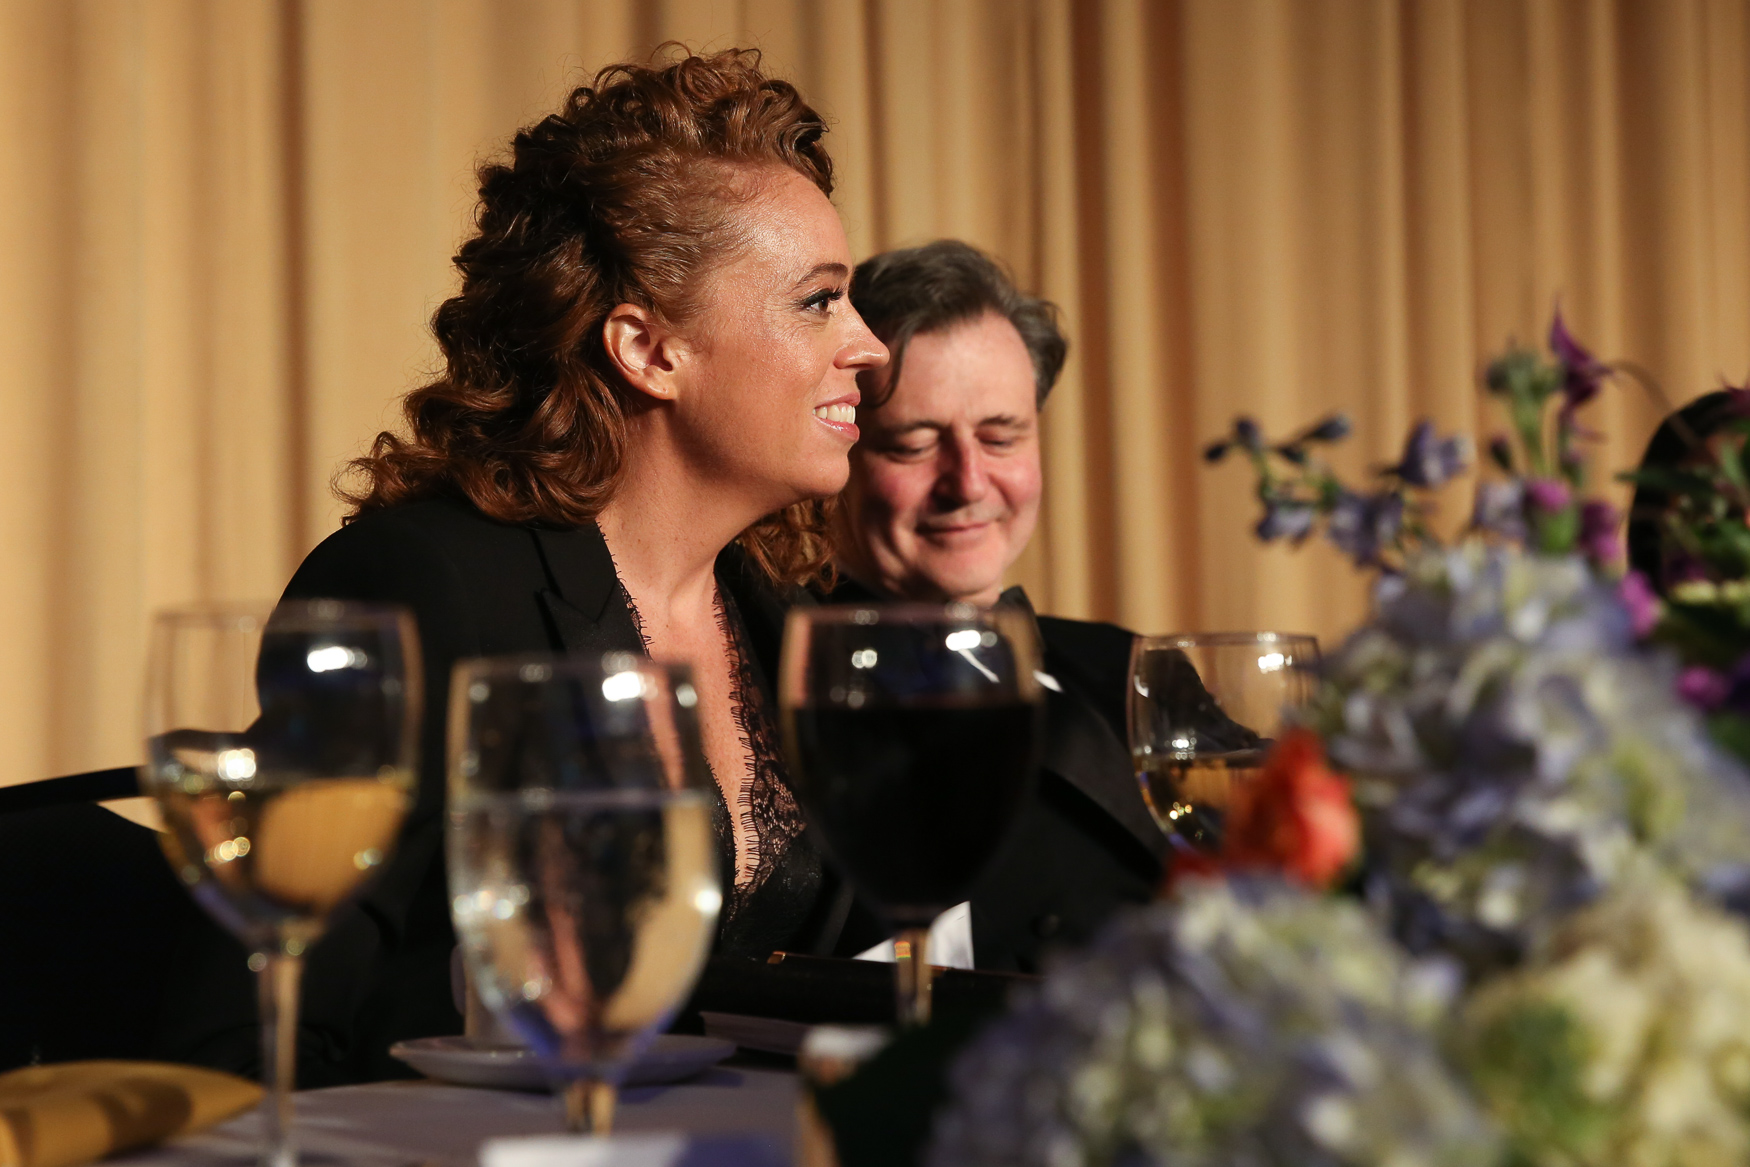 Comedienne Michelle Wolf lampooned politicians and media alike during the White House Correspondents' Dinner.{ }(Amanda Andrade-Rhoades/DC Refined)